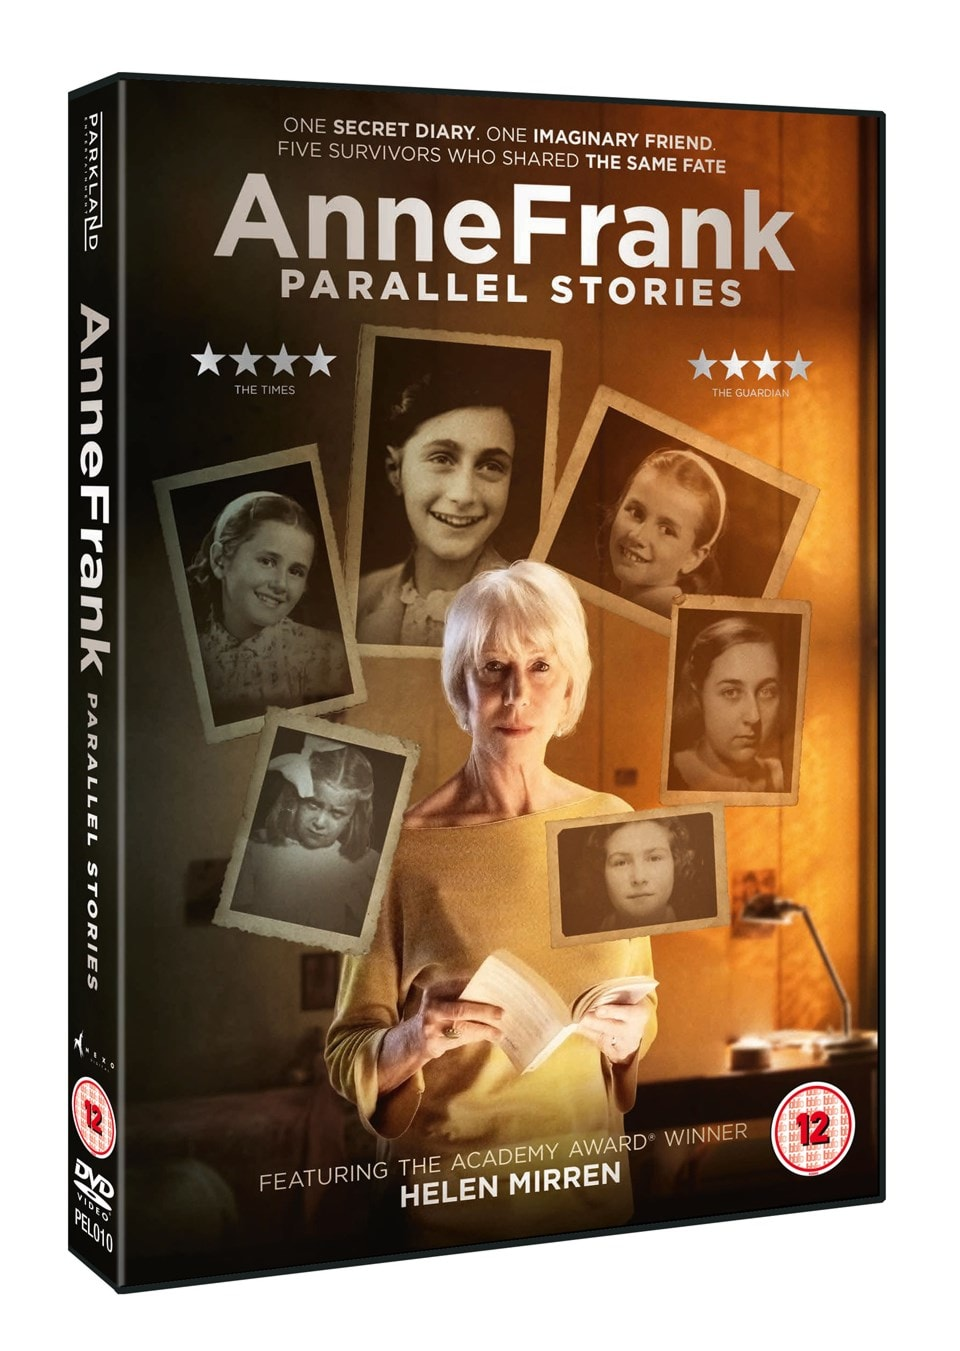 #AnneFrank - Parallel Stories - 2